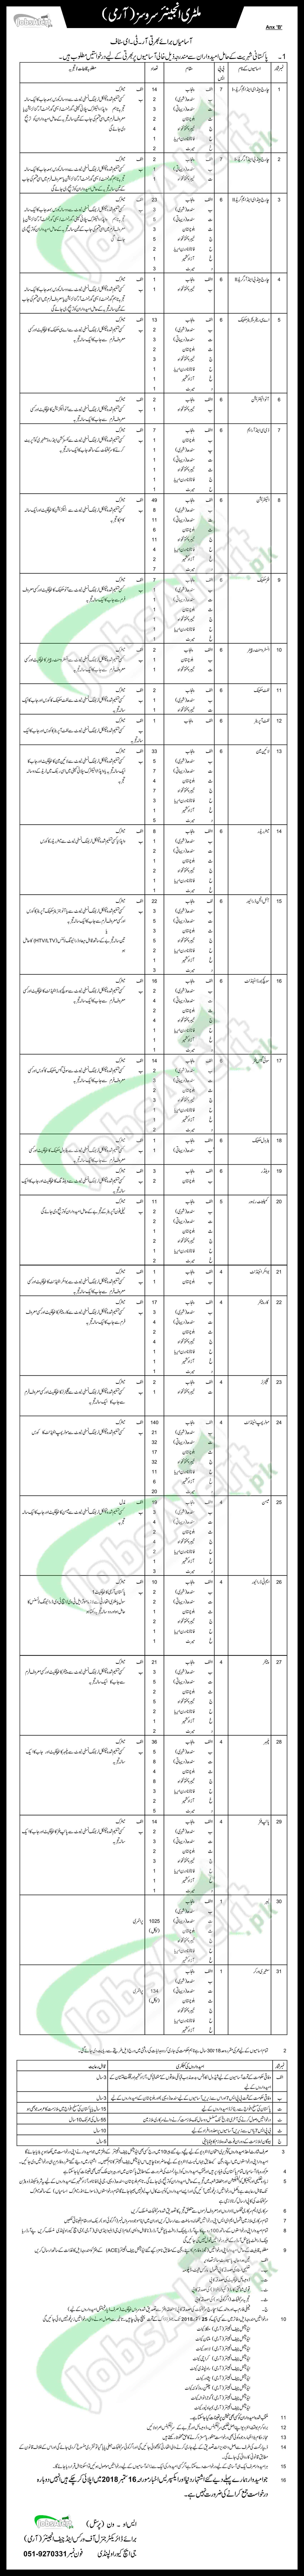 mes.gov.pk Jobs Application Form Download 2018 | Military Engineer ...